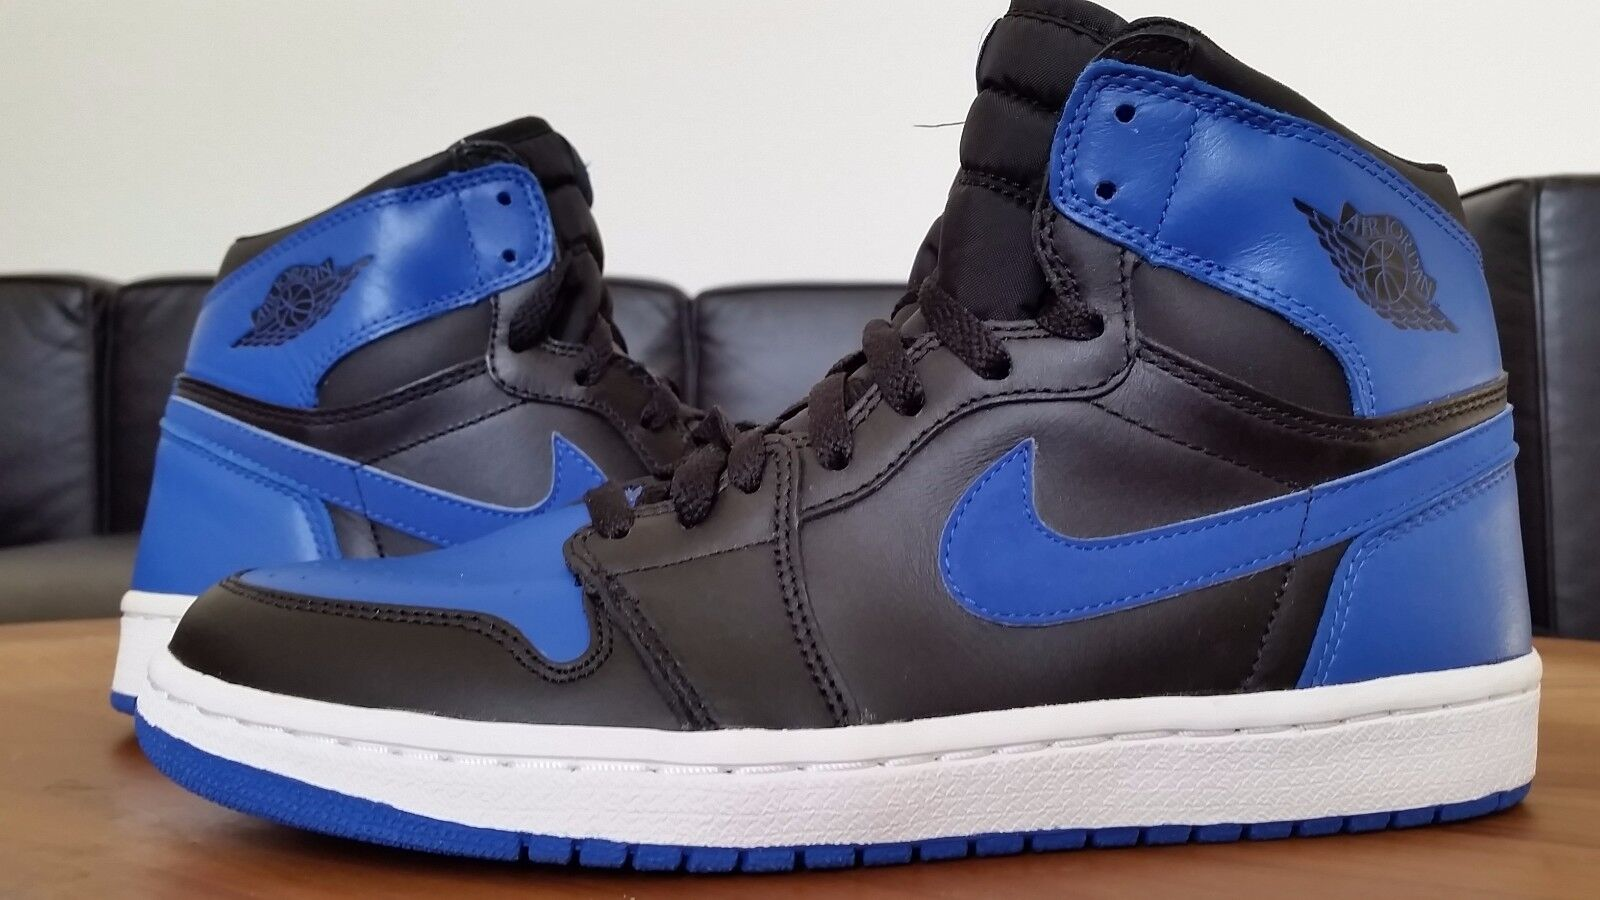 2001 136066-041 Nike Air Jordan Black Royal 1 9